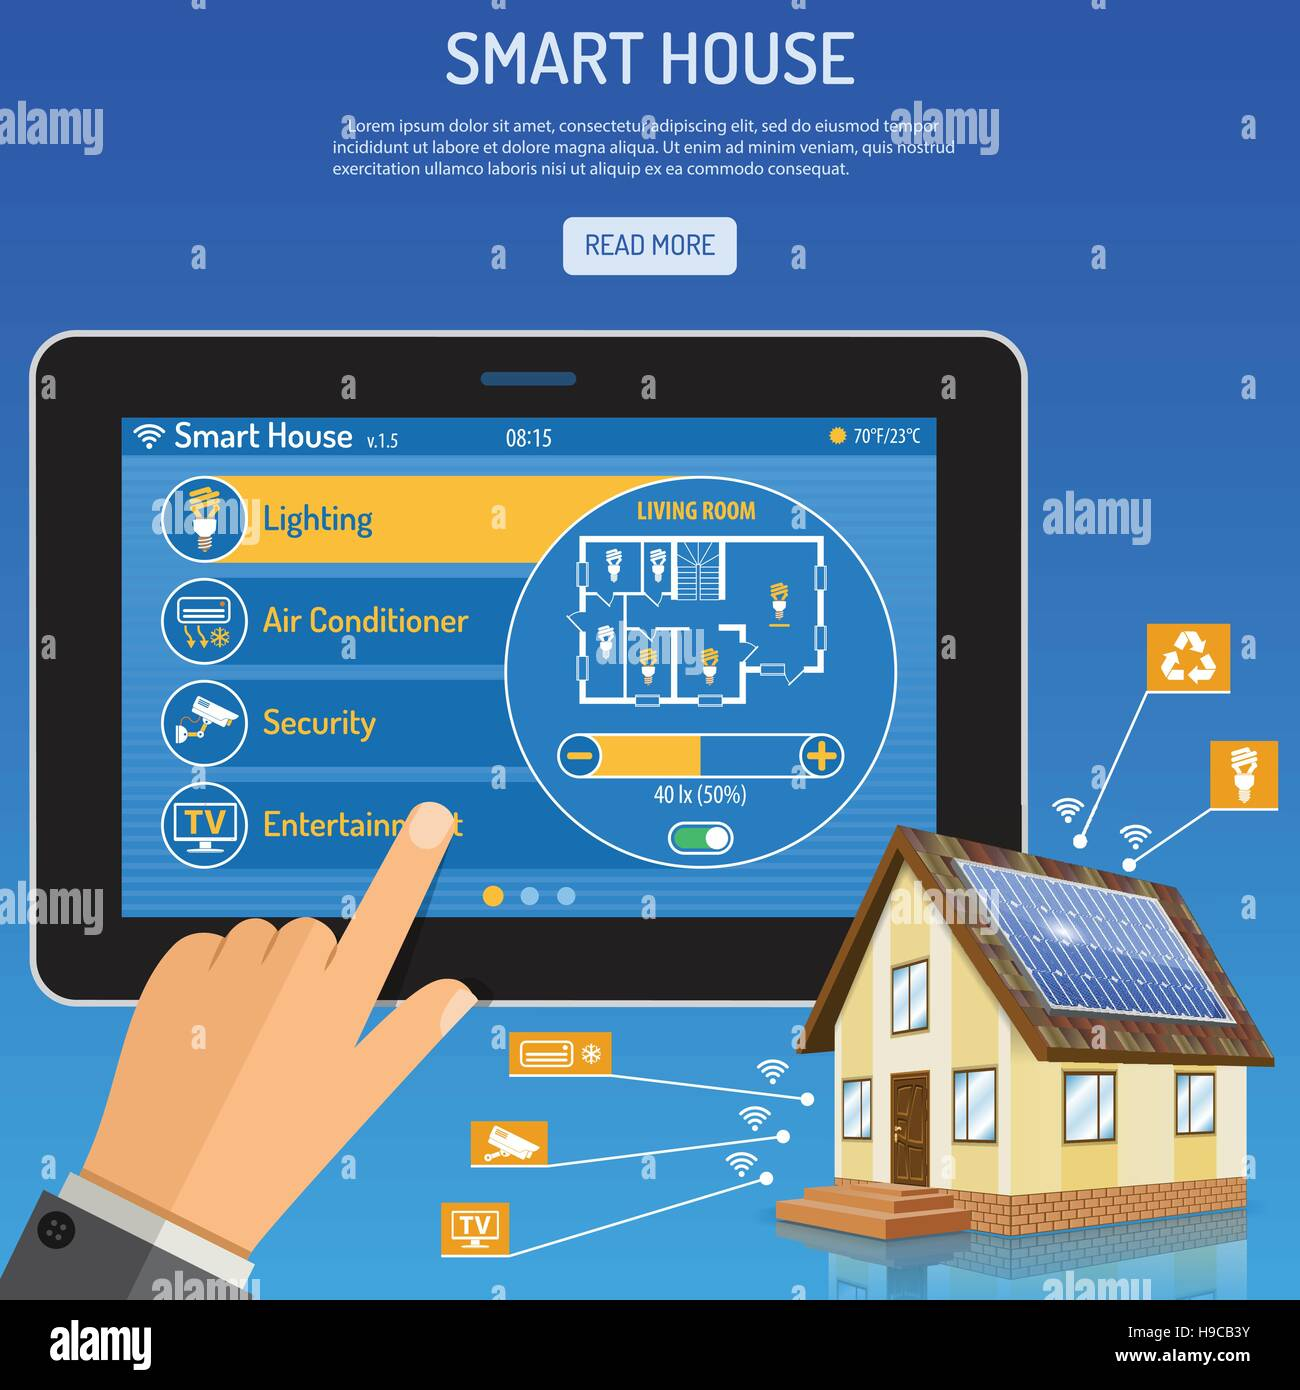 Smart House and internet things - Stock Image